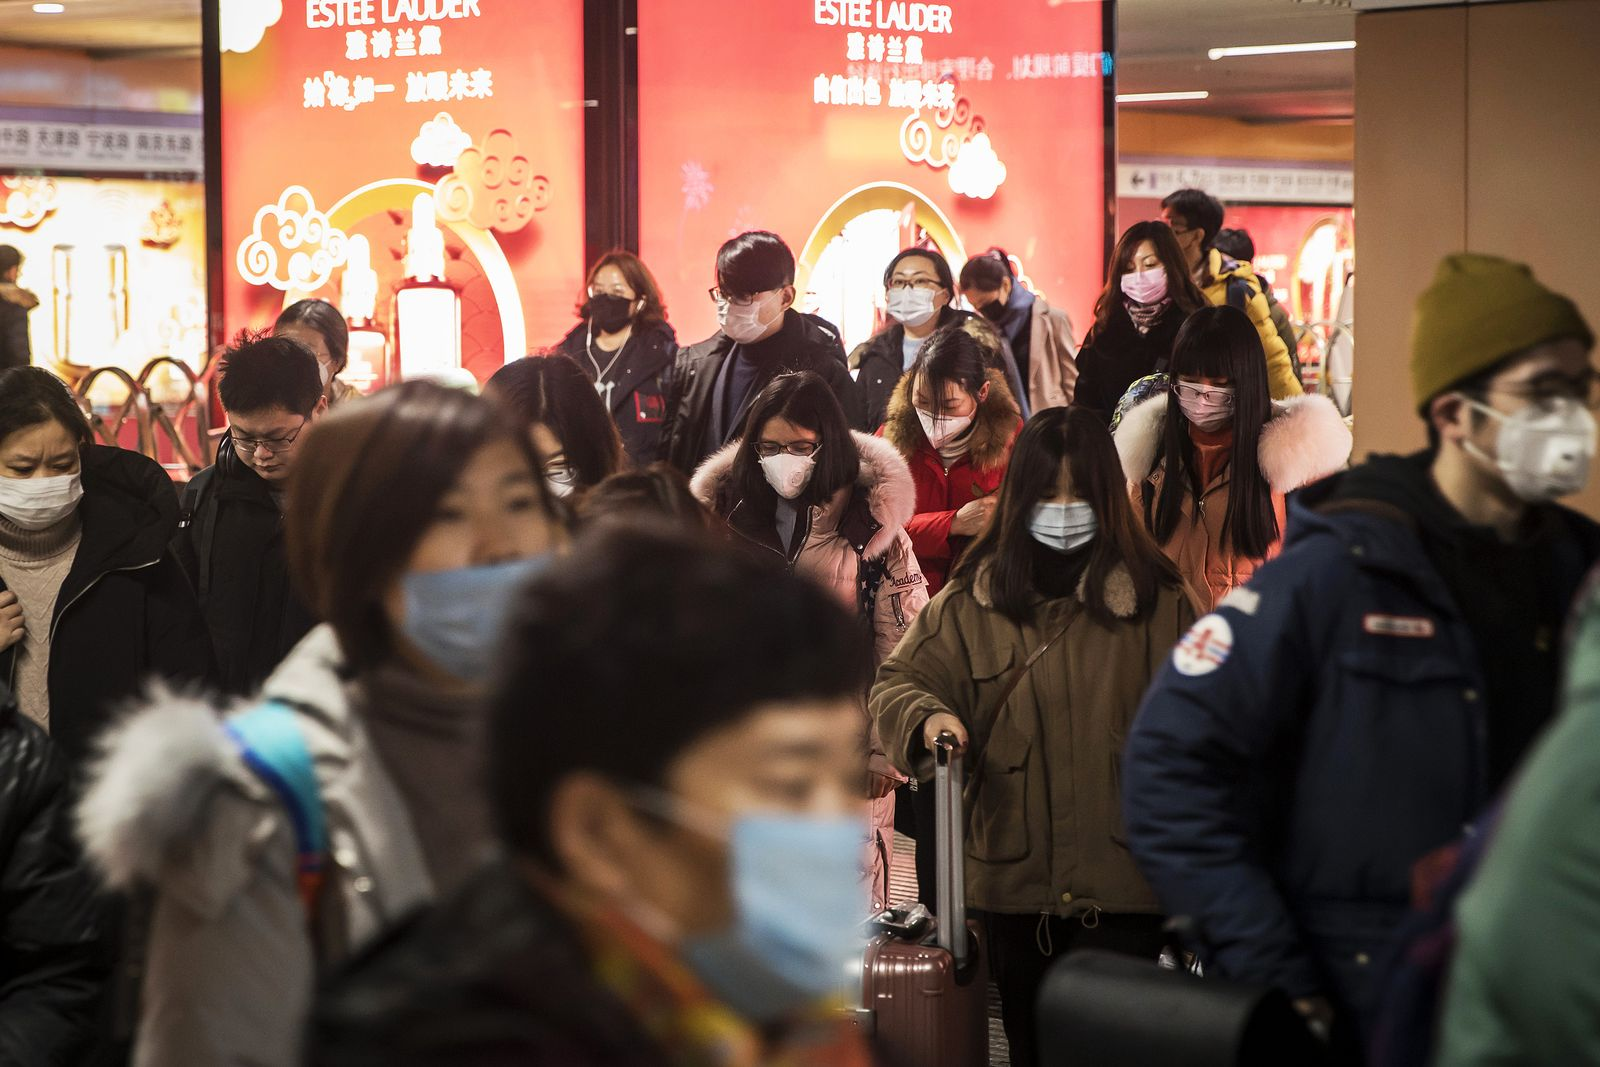 Streets of Shanghai Ahead of Lunar New Year as China Virus Fears Grow